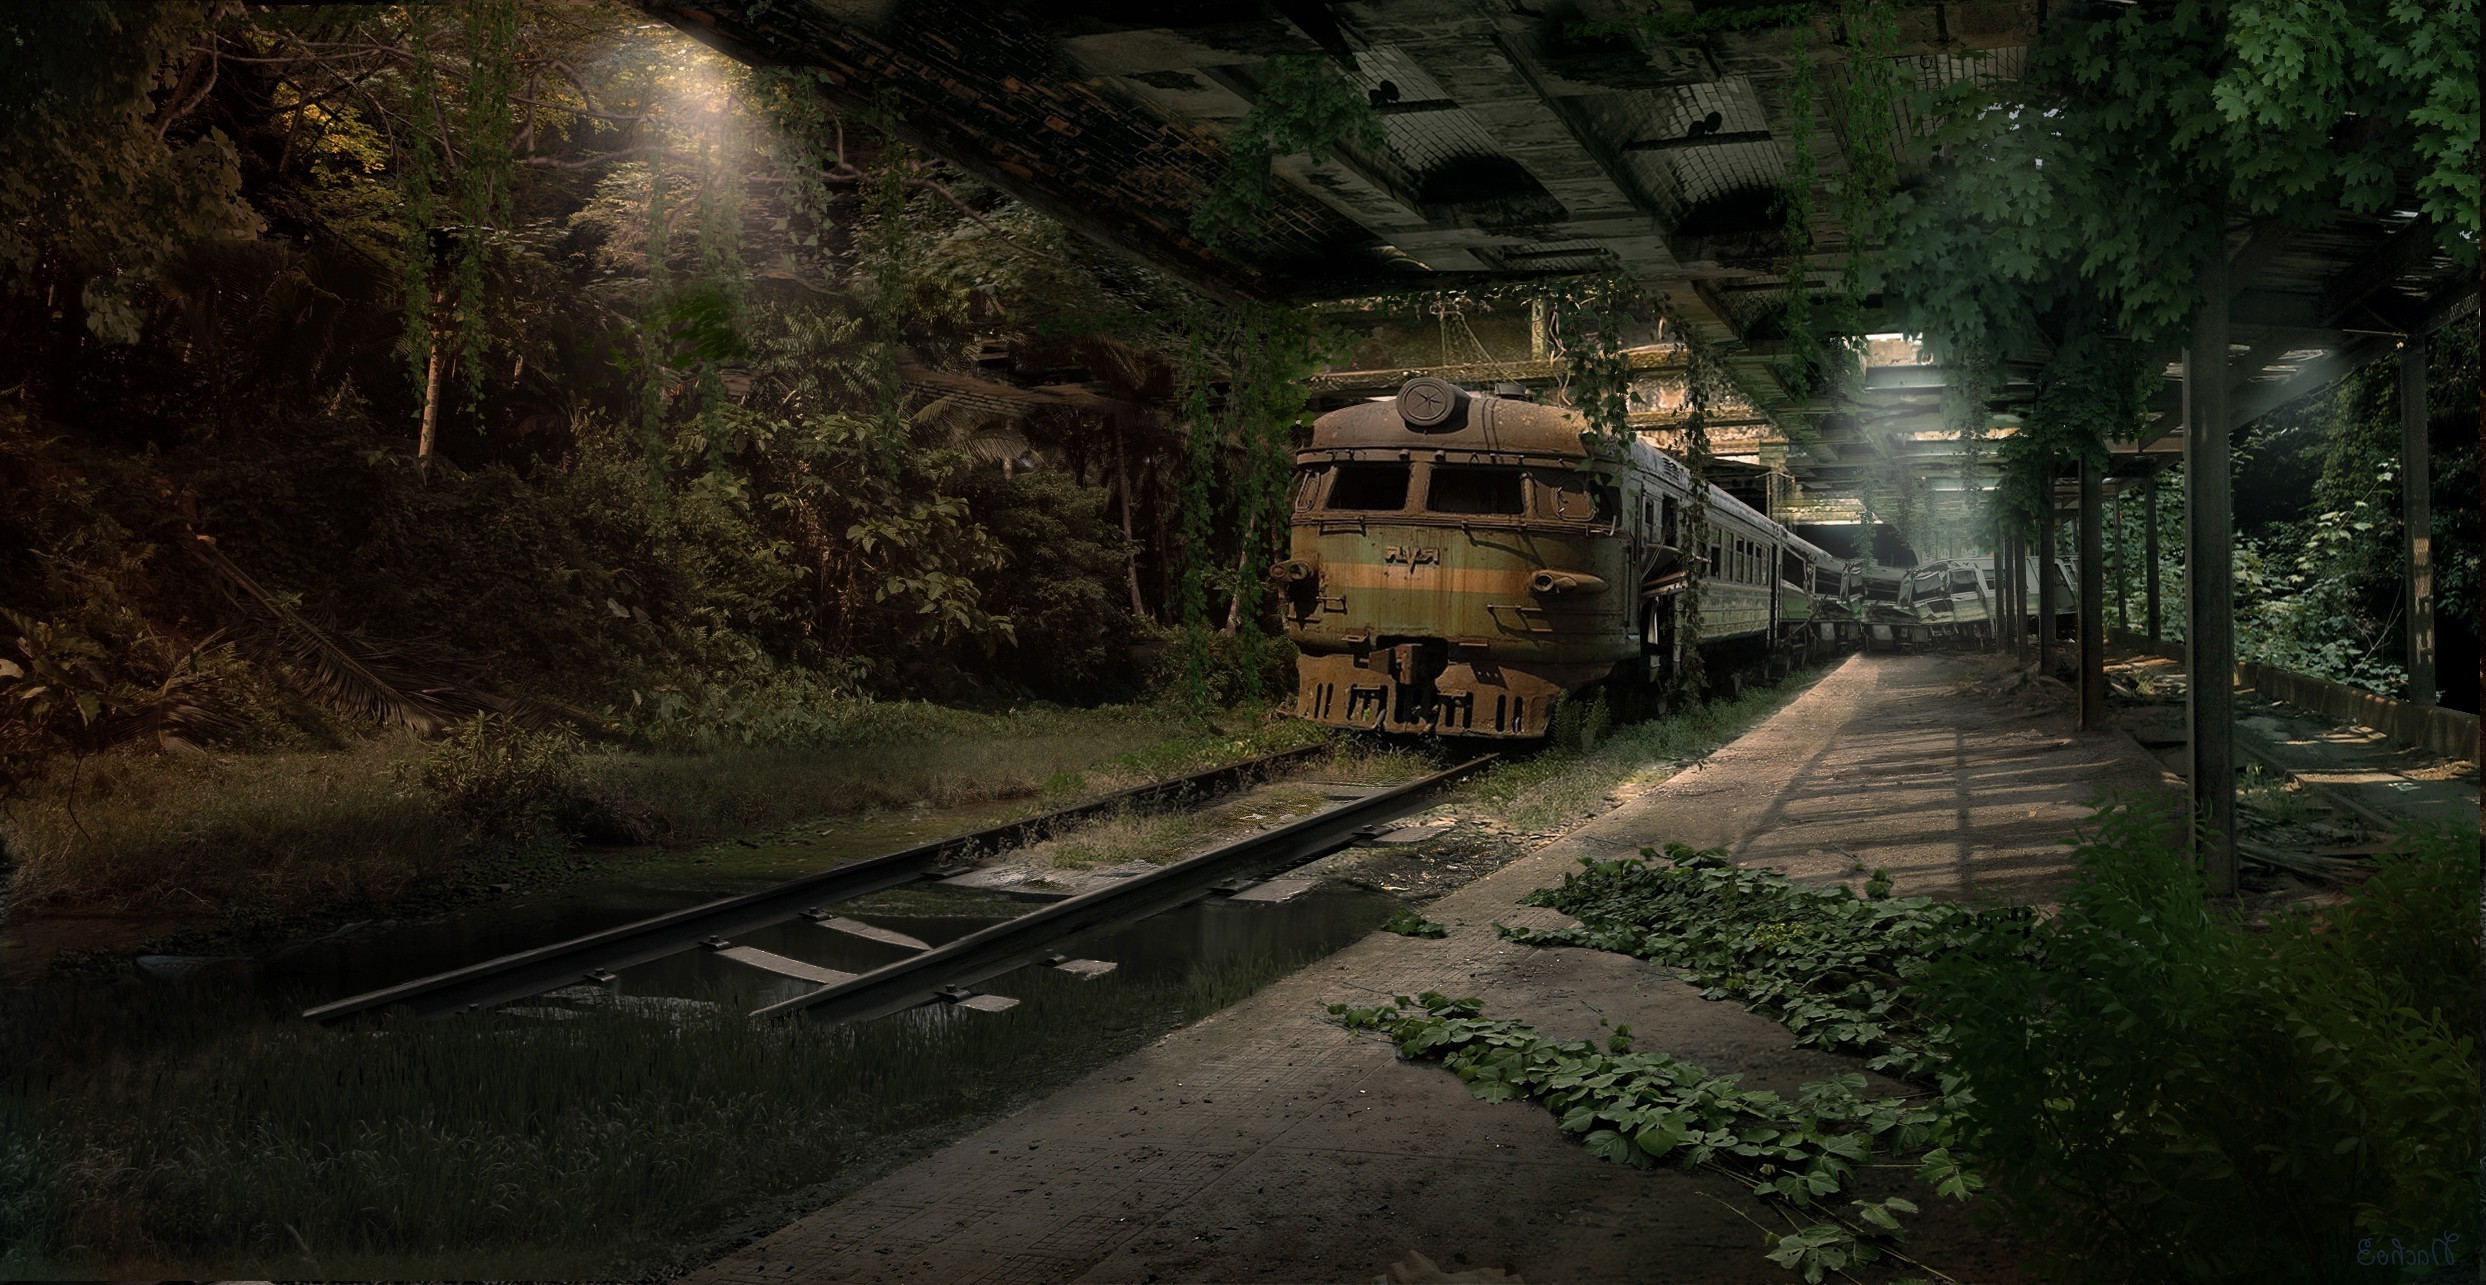 Train Backgrounds 64 Pictures